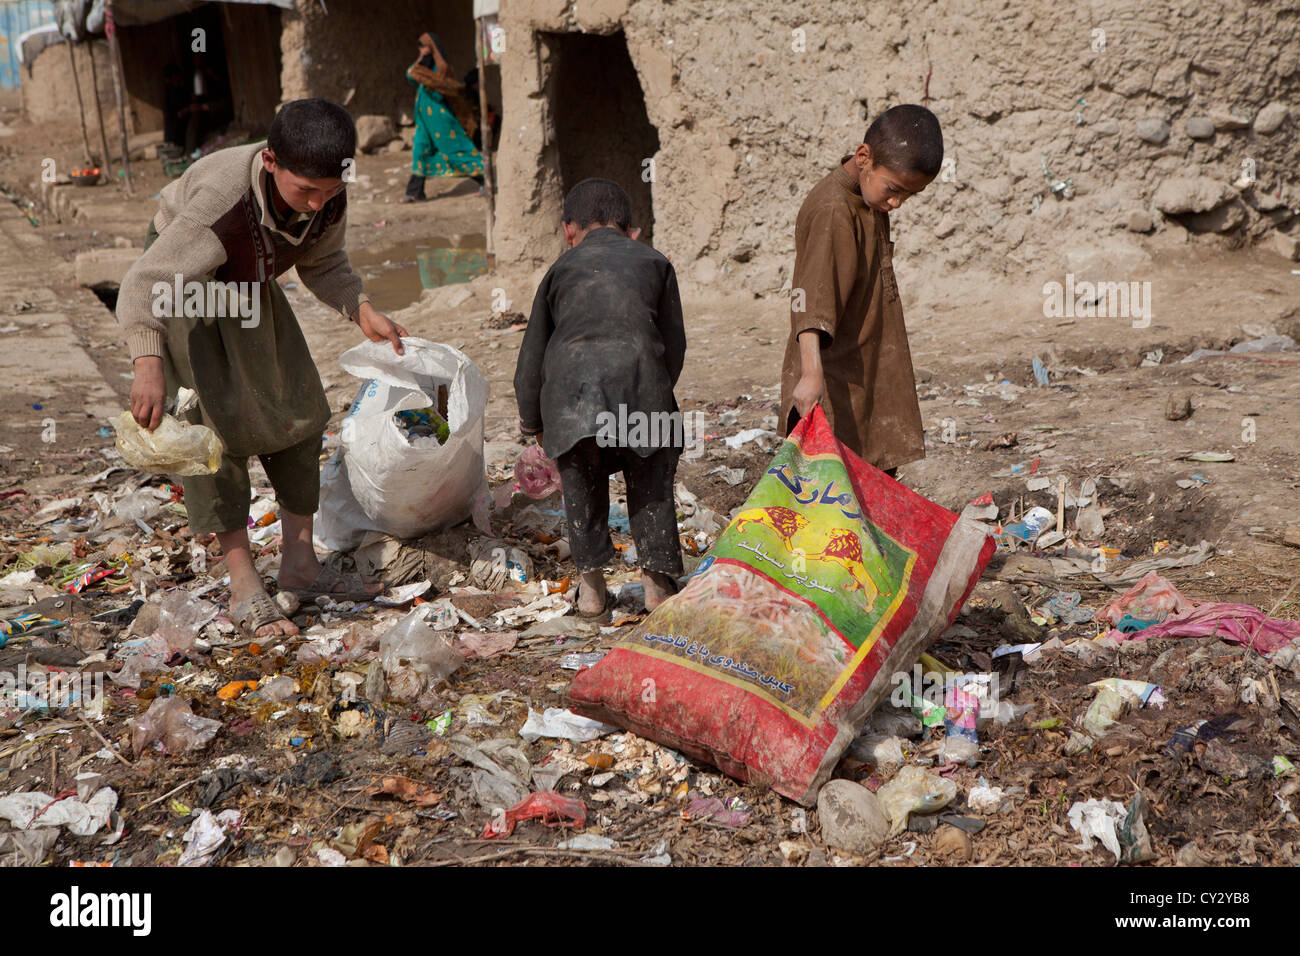 many children earn an income bt collecting plastic among rubbish, Kabul, - Stock Image